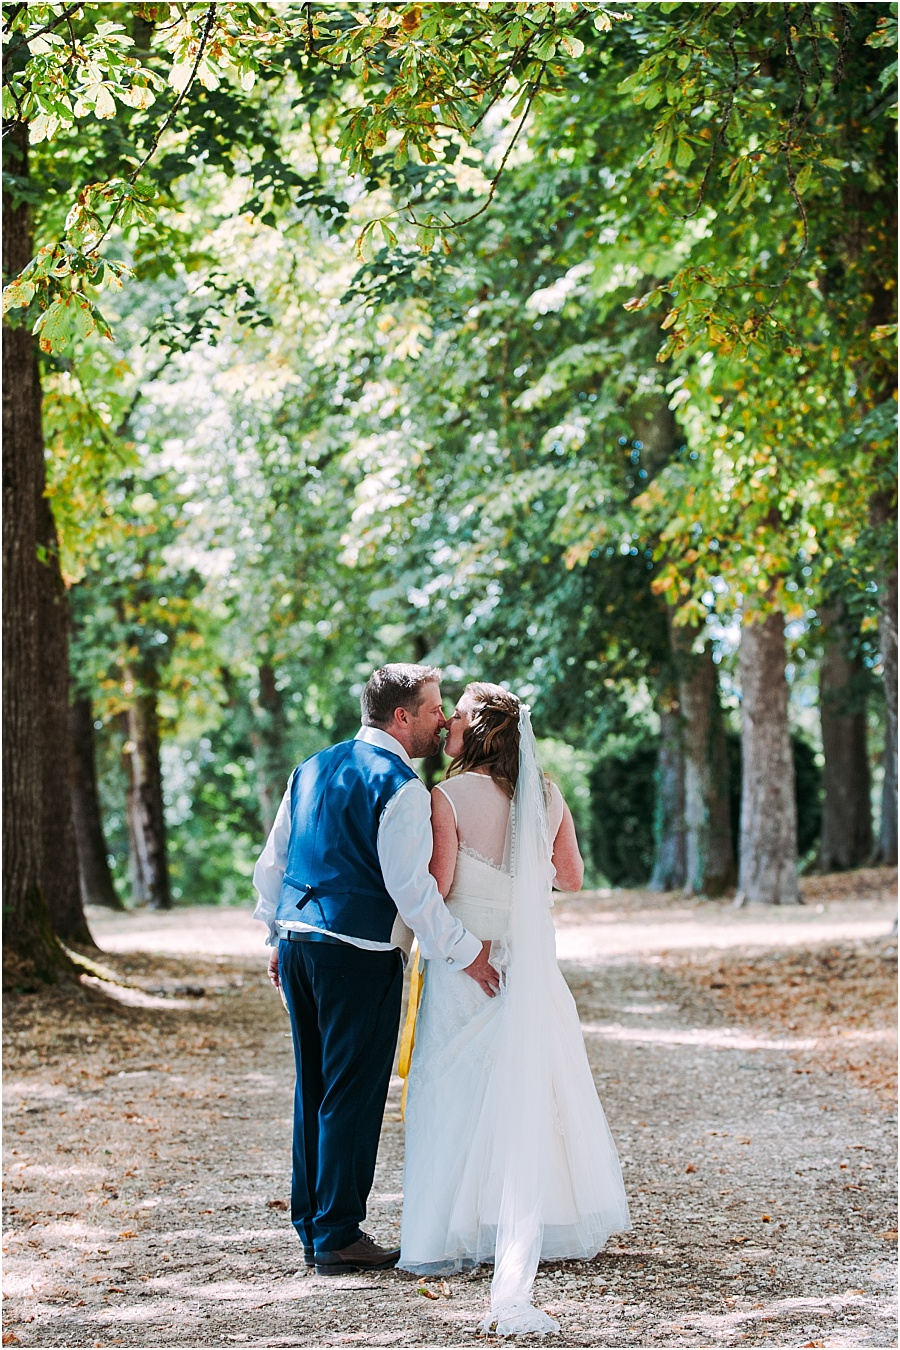 Chateau de Cazenac bride and groom portrait wedding photo